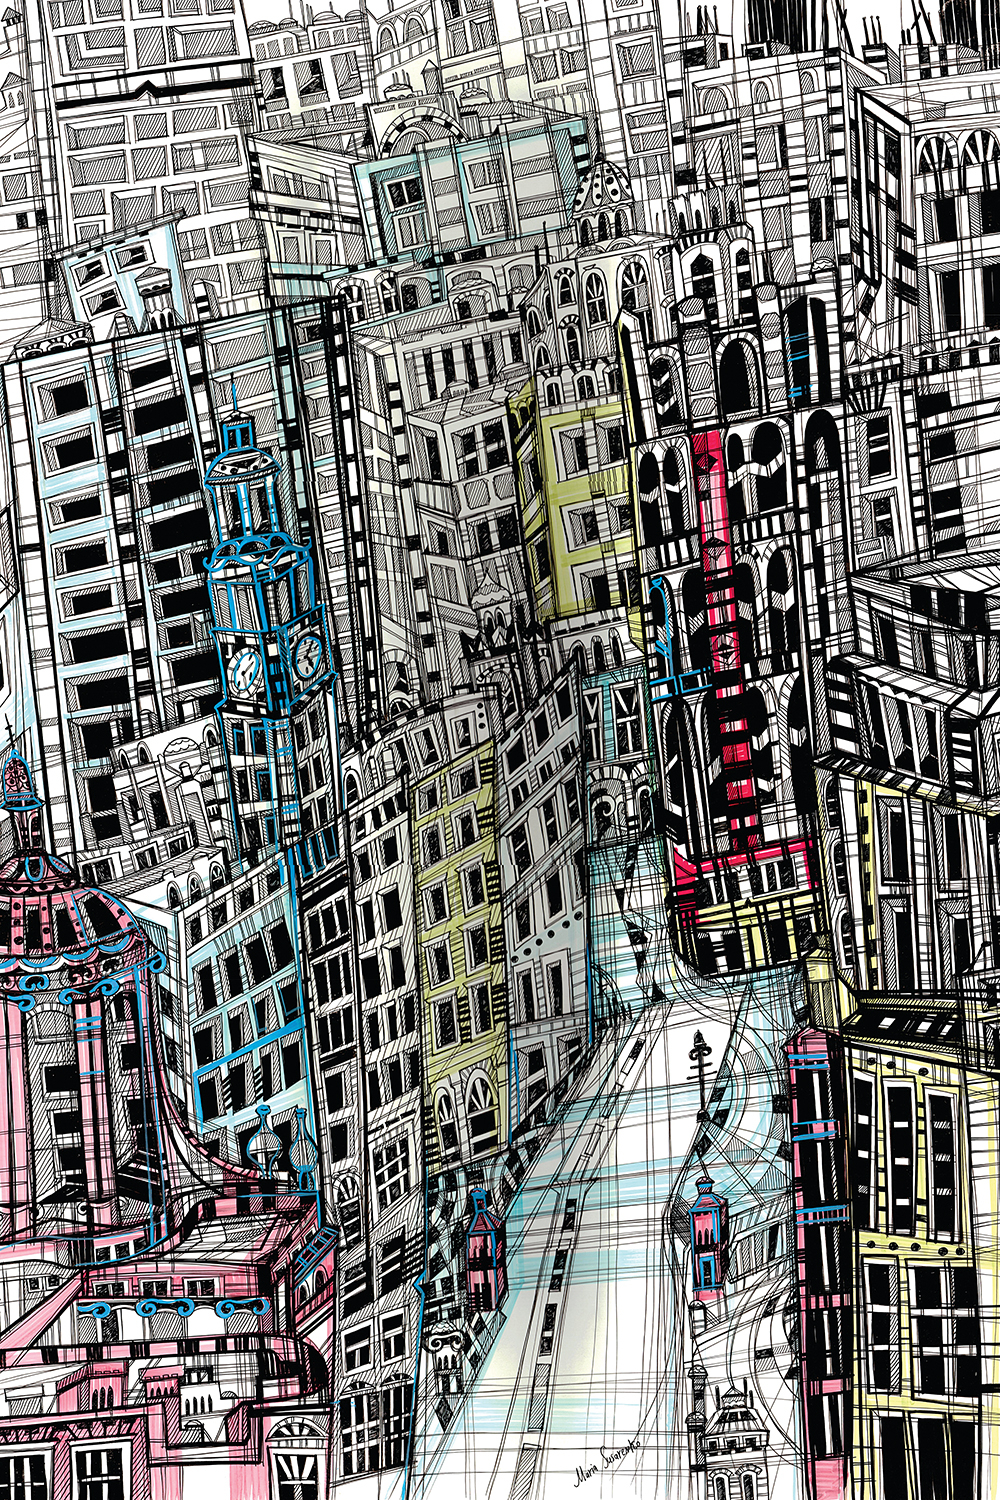 a drawing of buildings in new york that shows a very congested urban city life